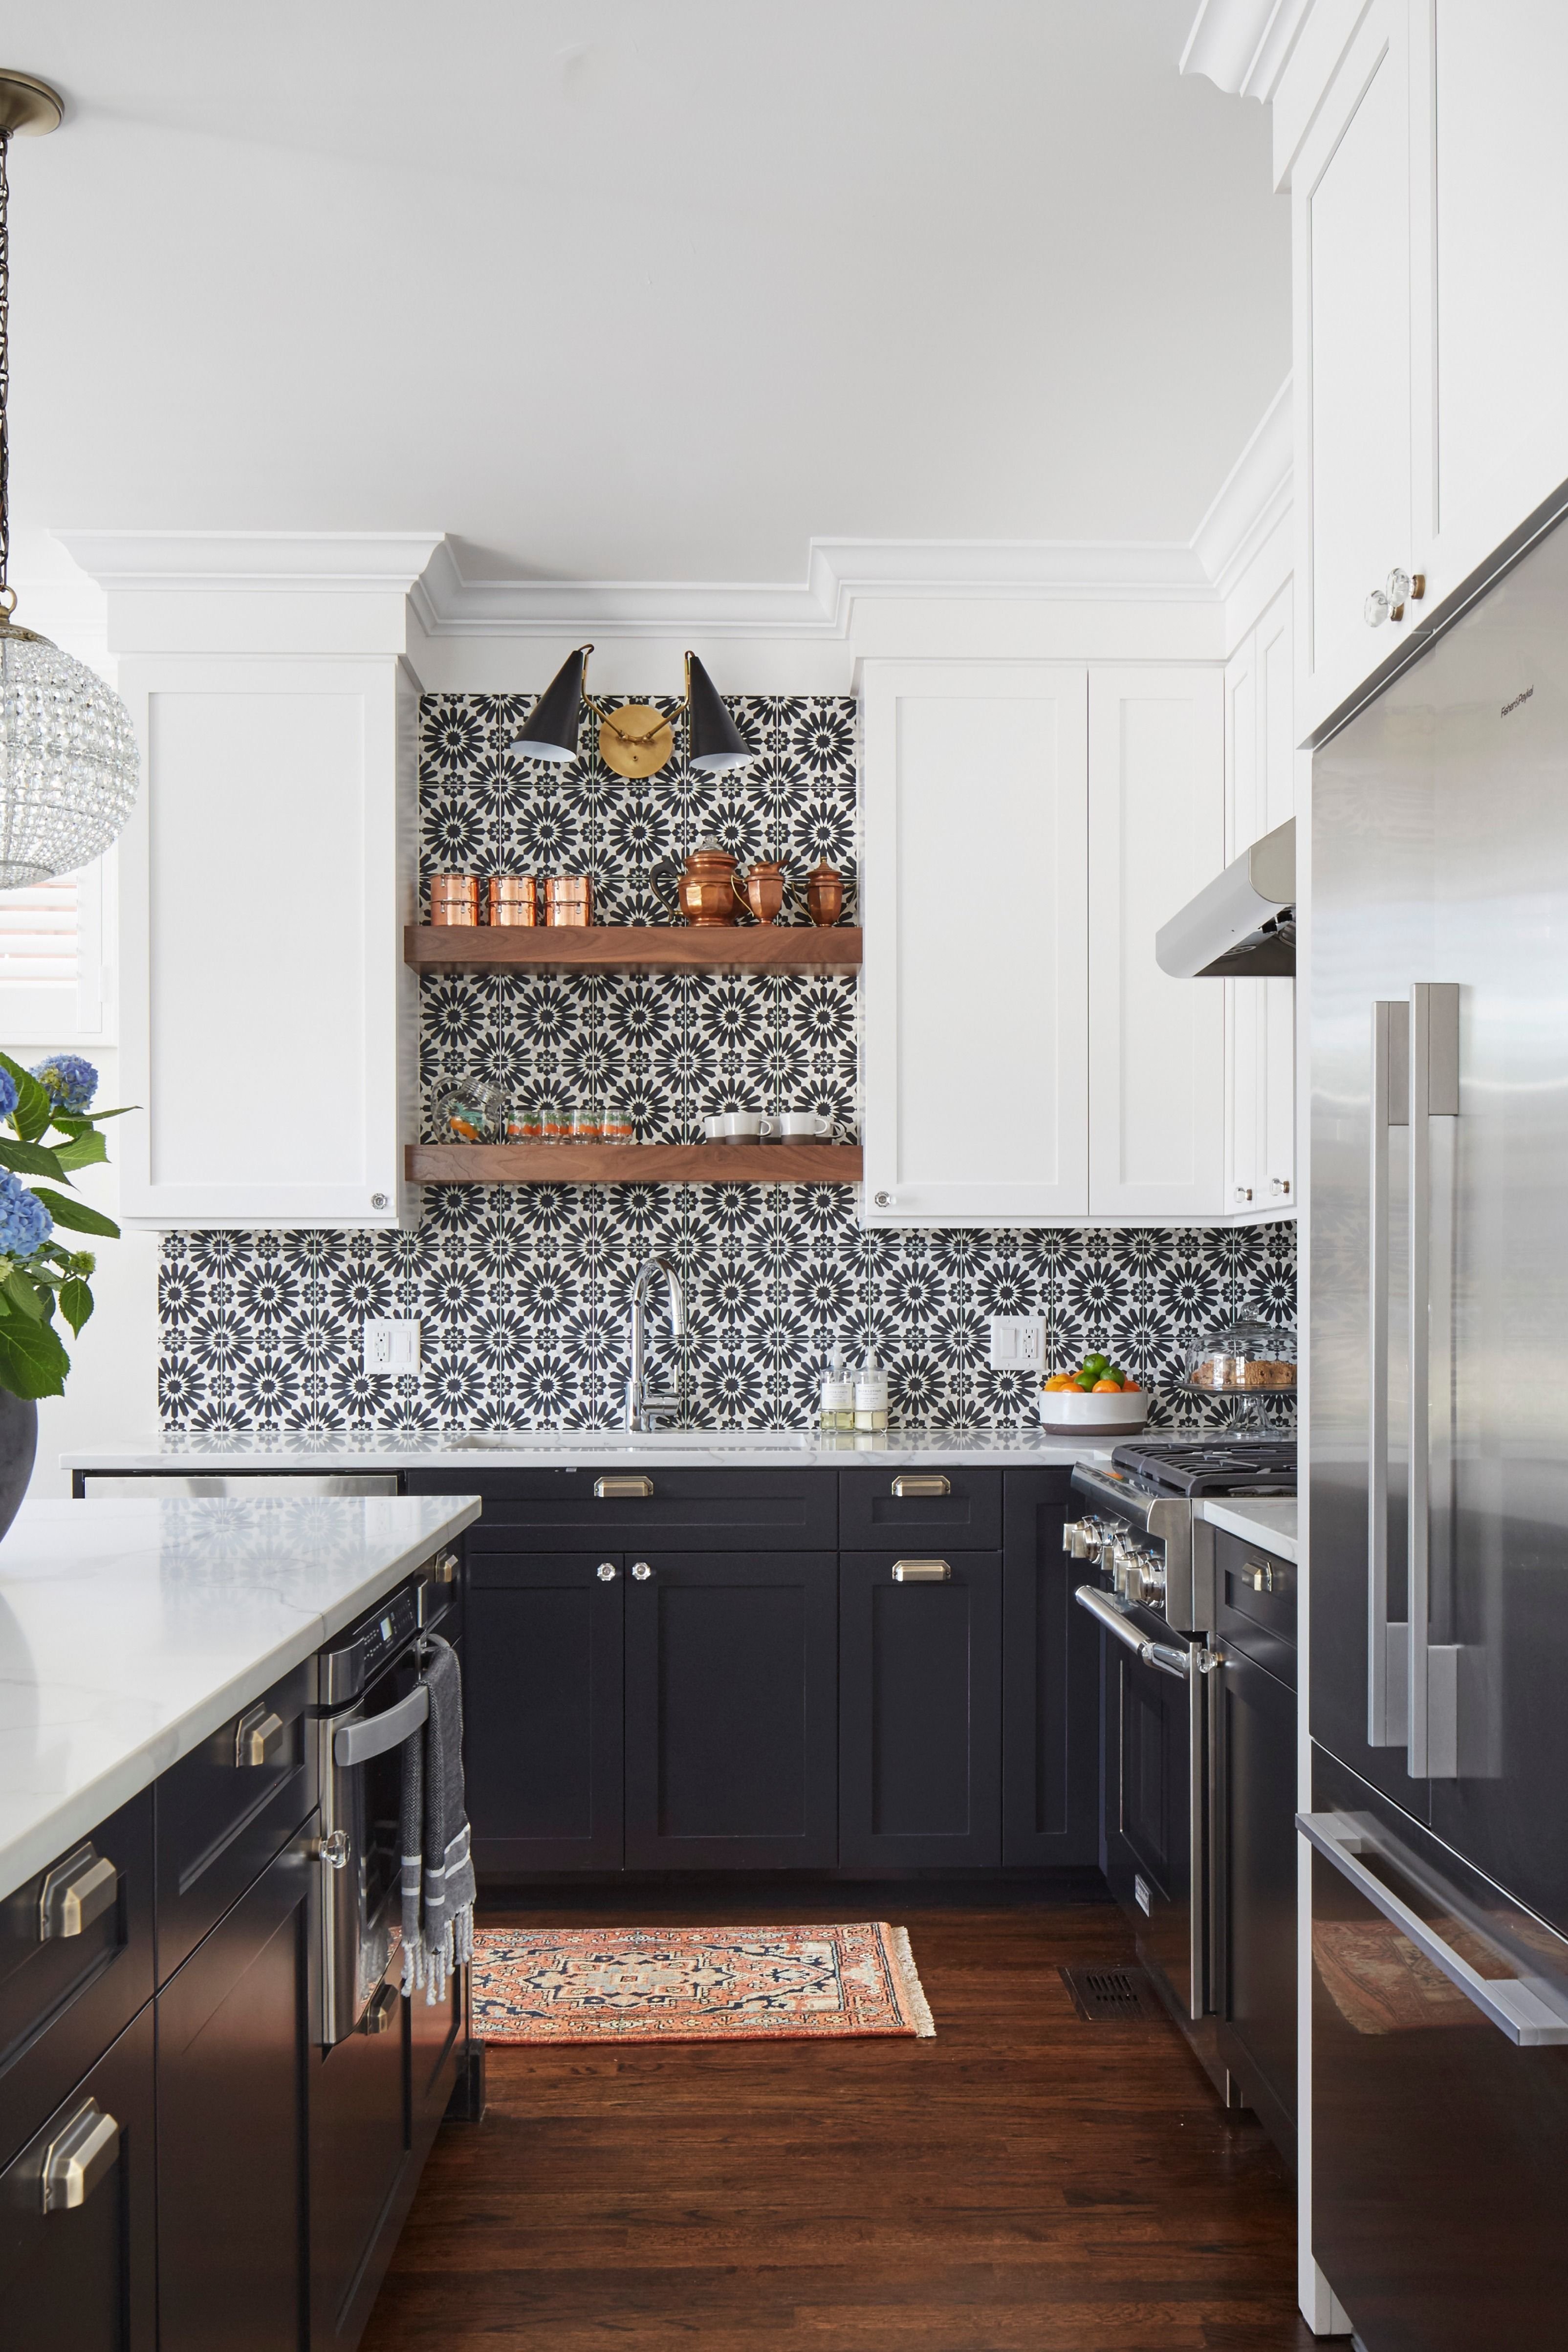 10 First Rate Kitchen Remodel Knoxville Tn Ideas In 2020 Kitchen Design Contemporary Kitchen Kitchen Renovation